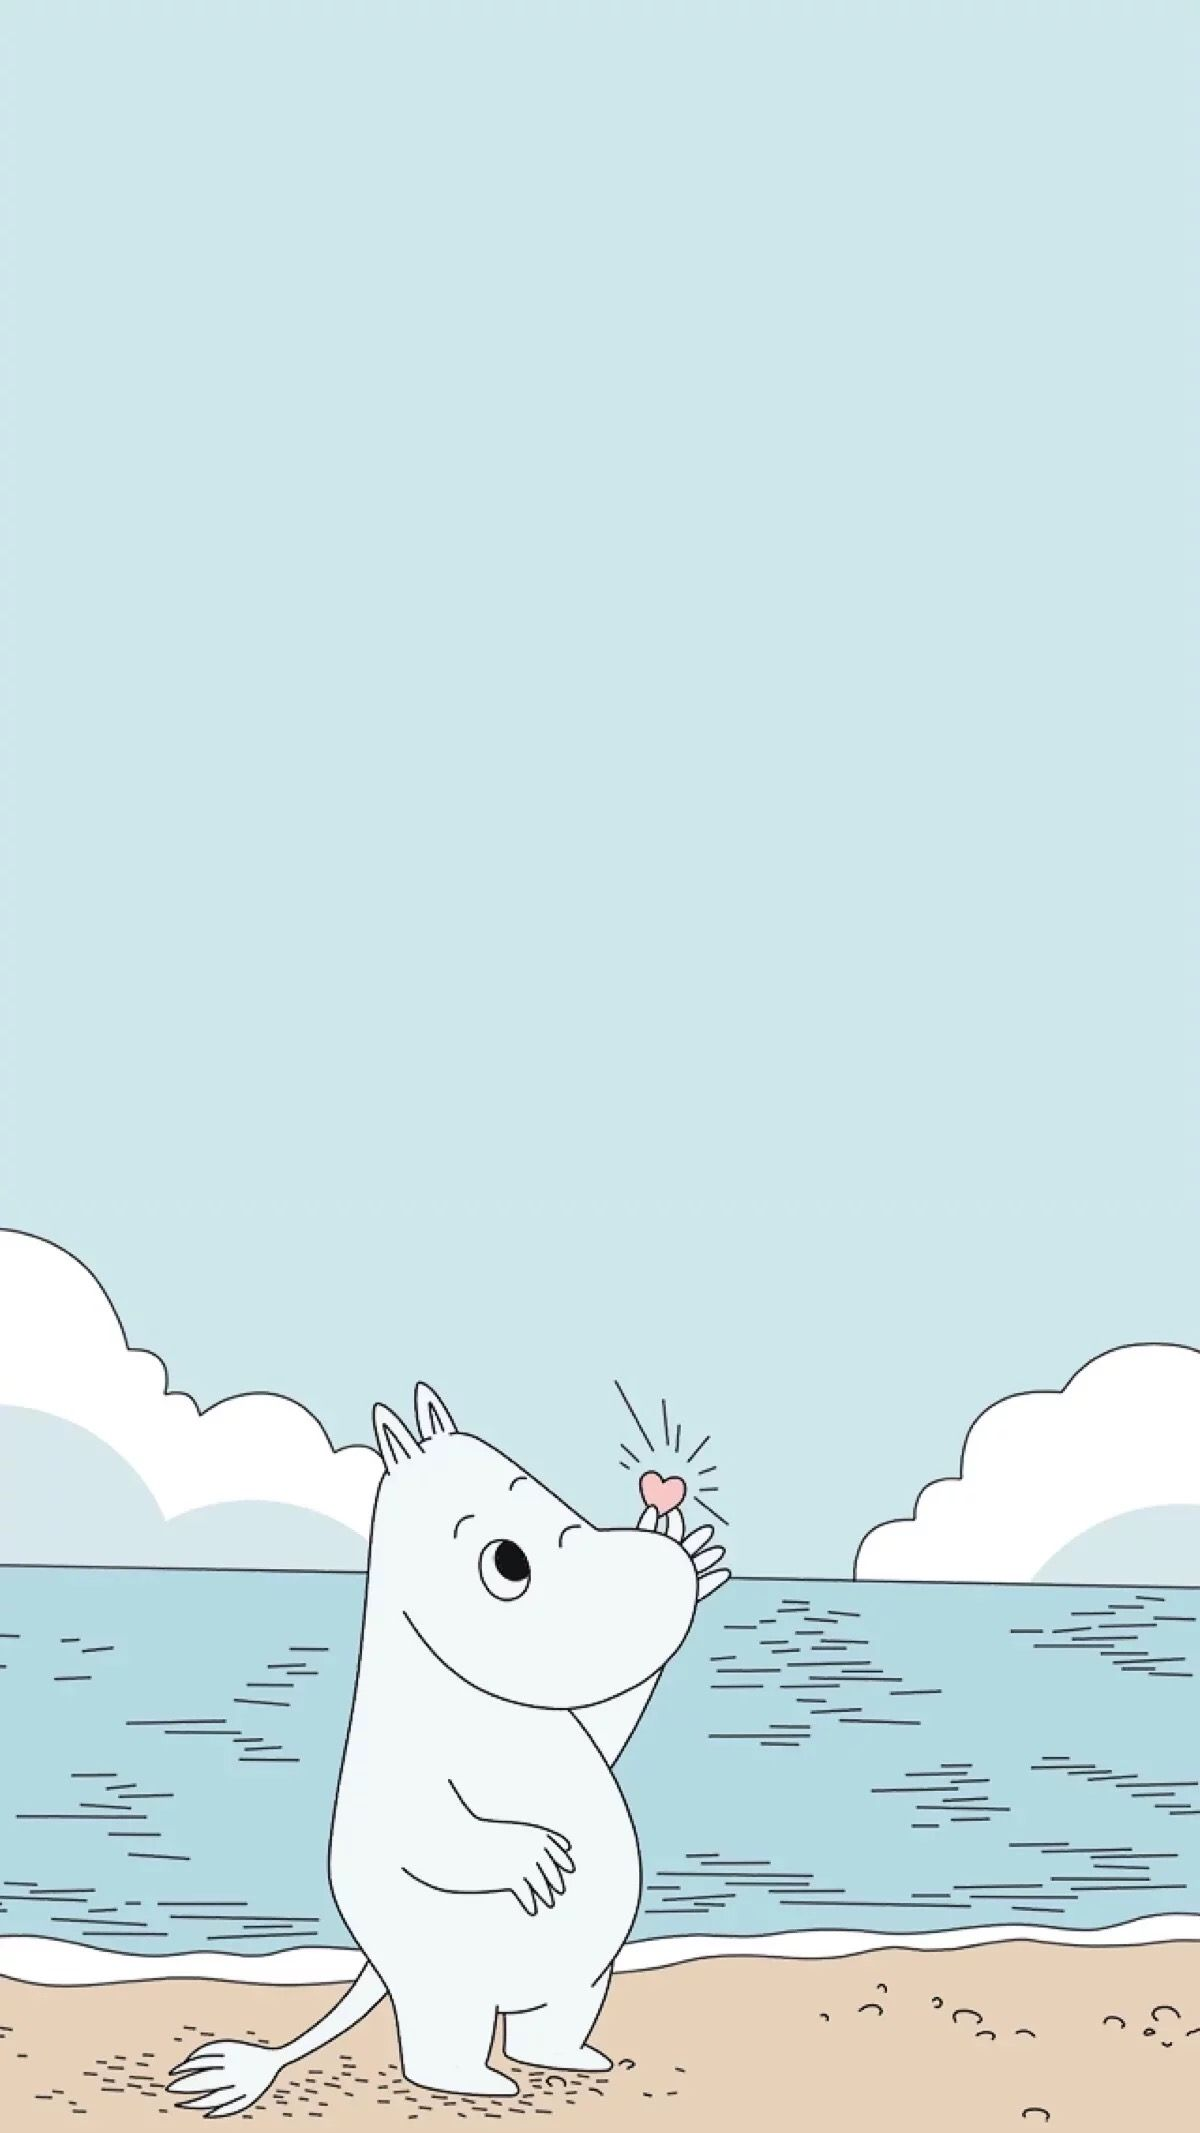 Moomin X Sea Wallpaper Iphone Cute Kawaii Wallpaper Moomin Wallpaper